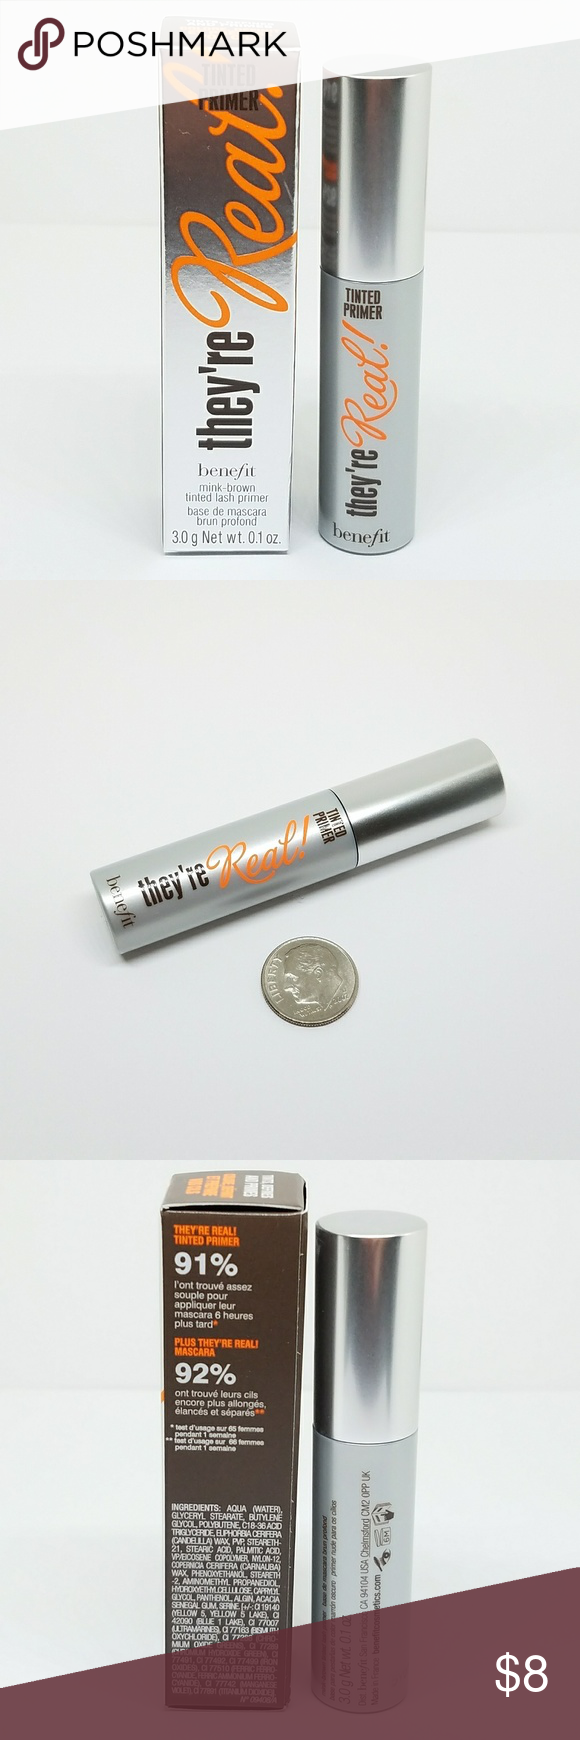 3e37dfc91d7 Benefit They're Real MINK BROWN Tinted Lash Primer Brand New in Box Travel  Size 0.10 oz (3g) Benefit Makeup Mascara